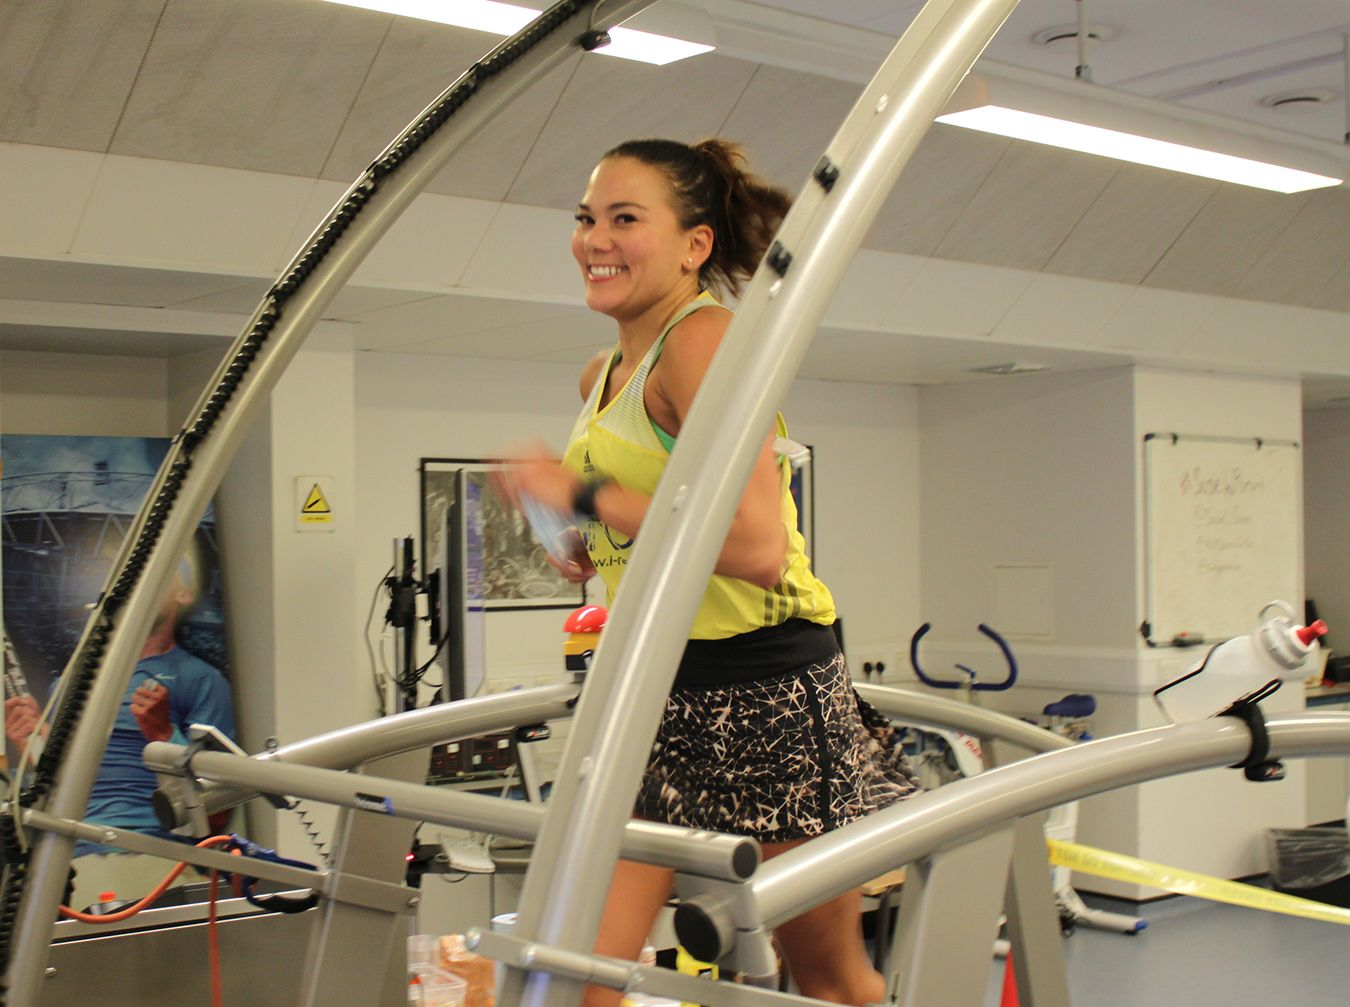 an image of ultr-runner Susie Chan on a treadmill